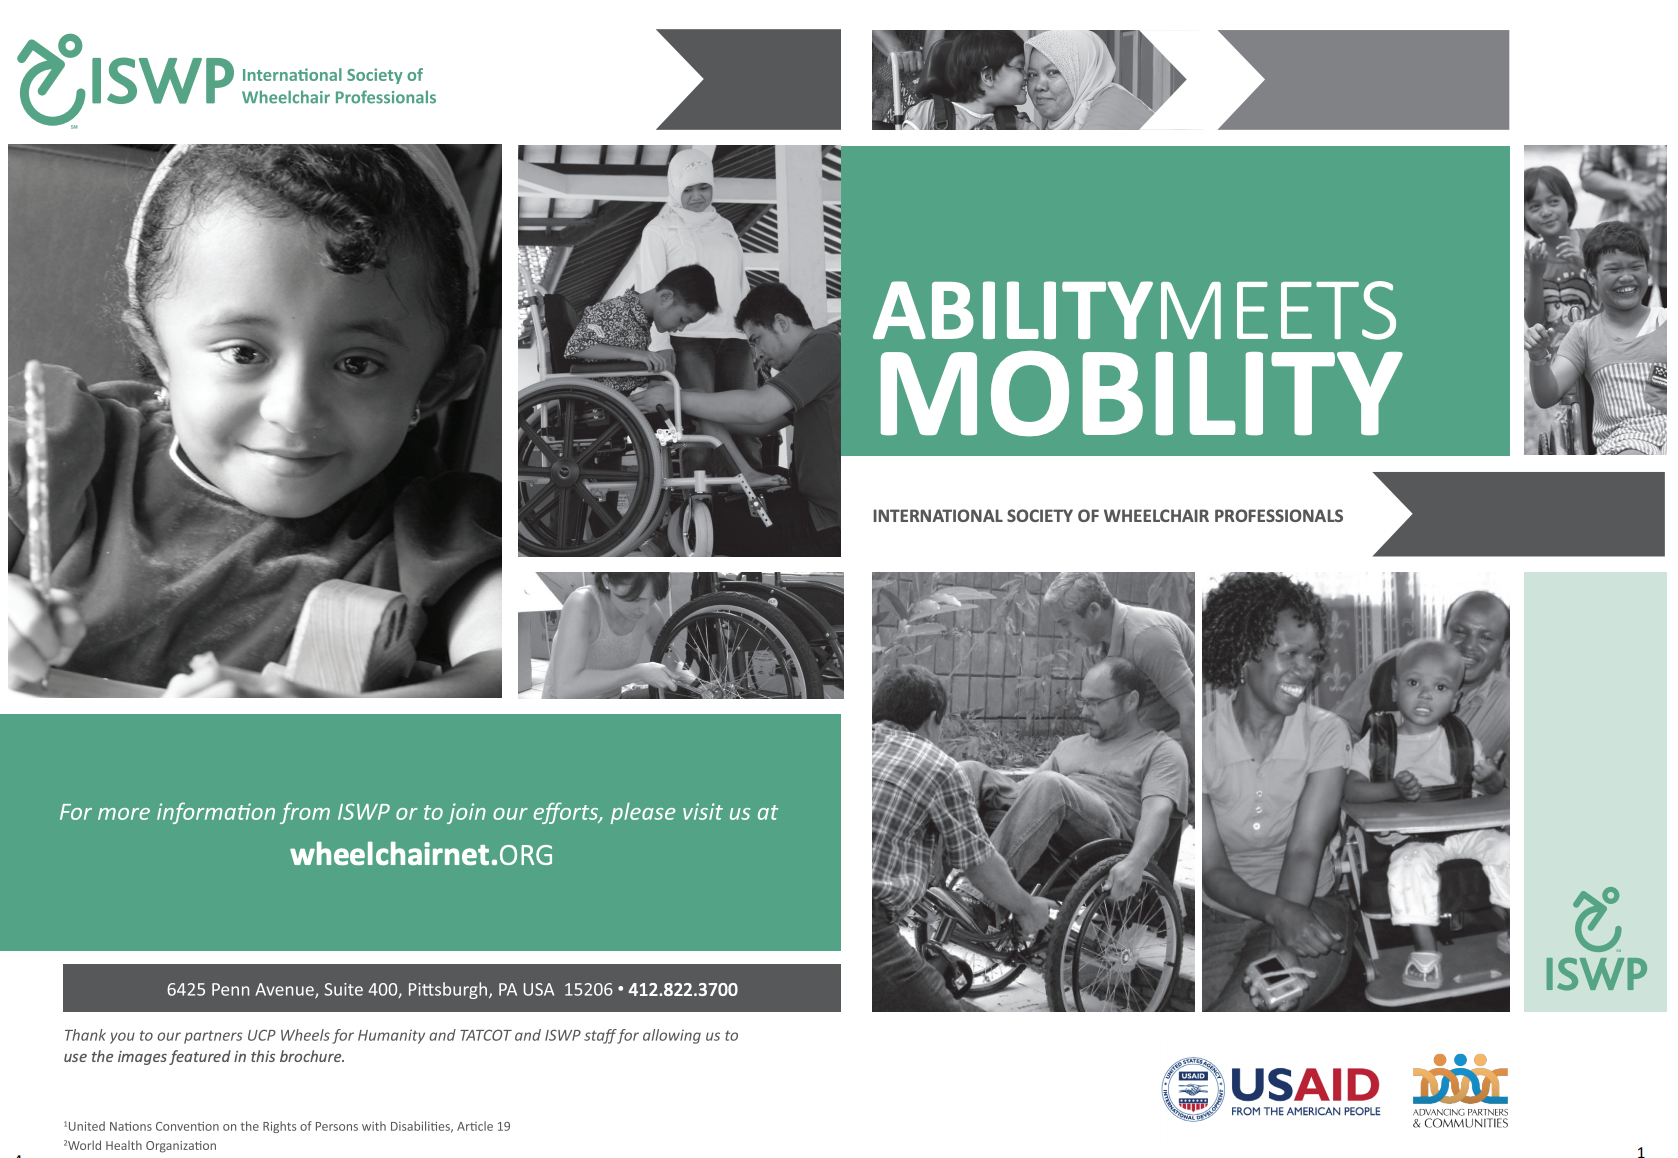 ISWP - Ability Meets Mobility